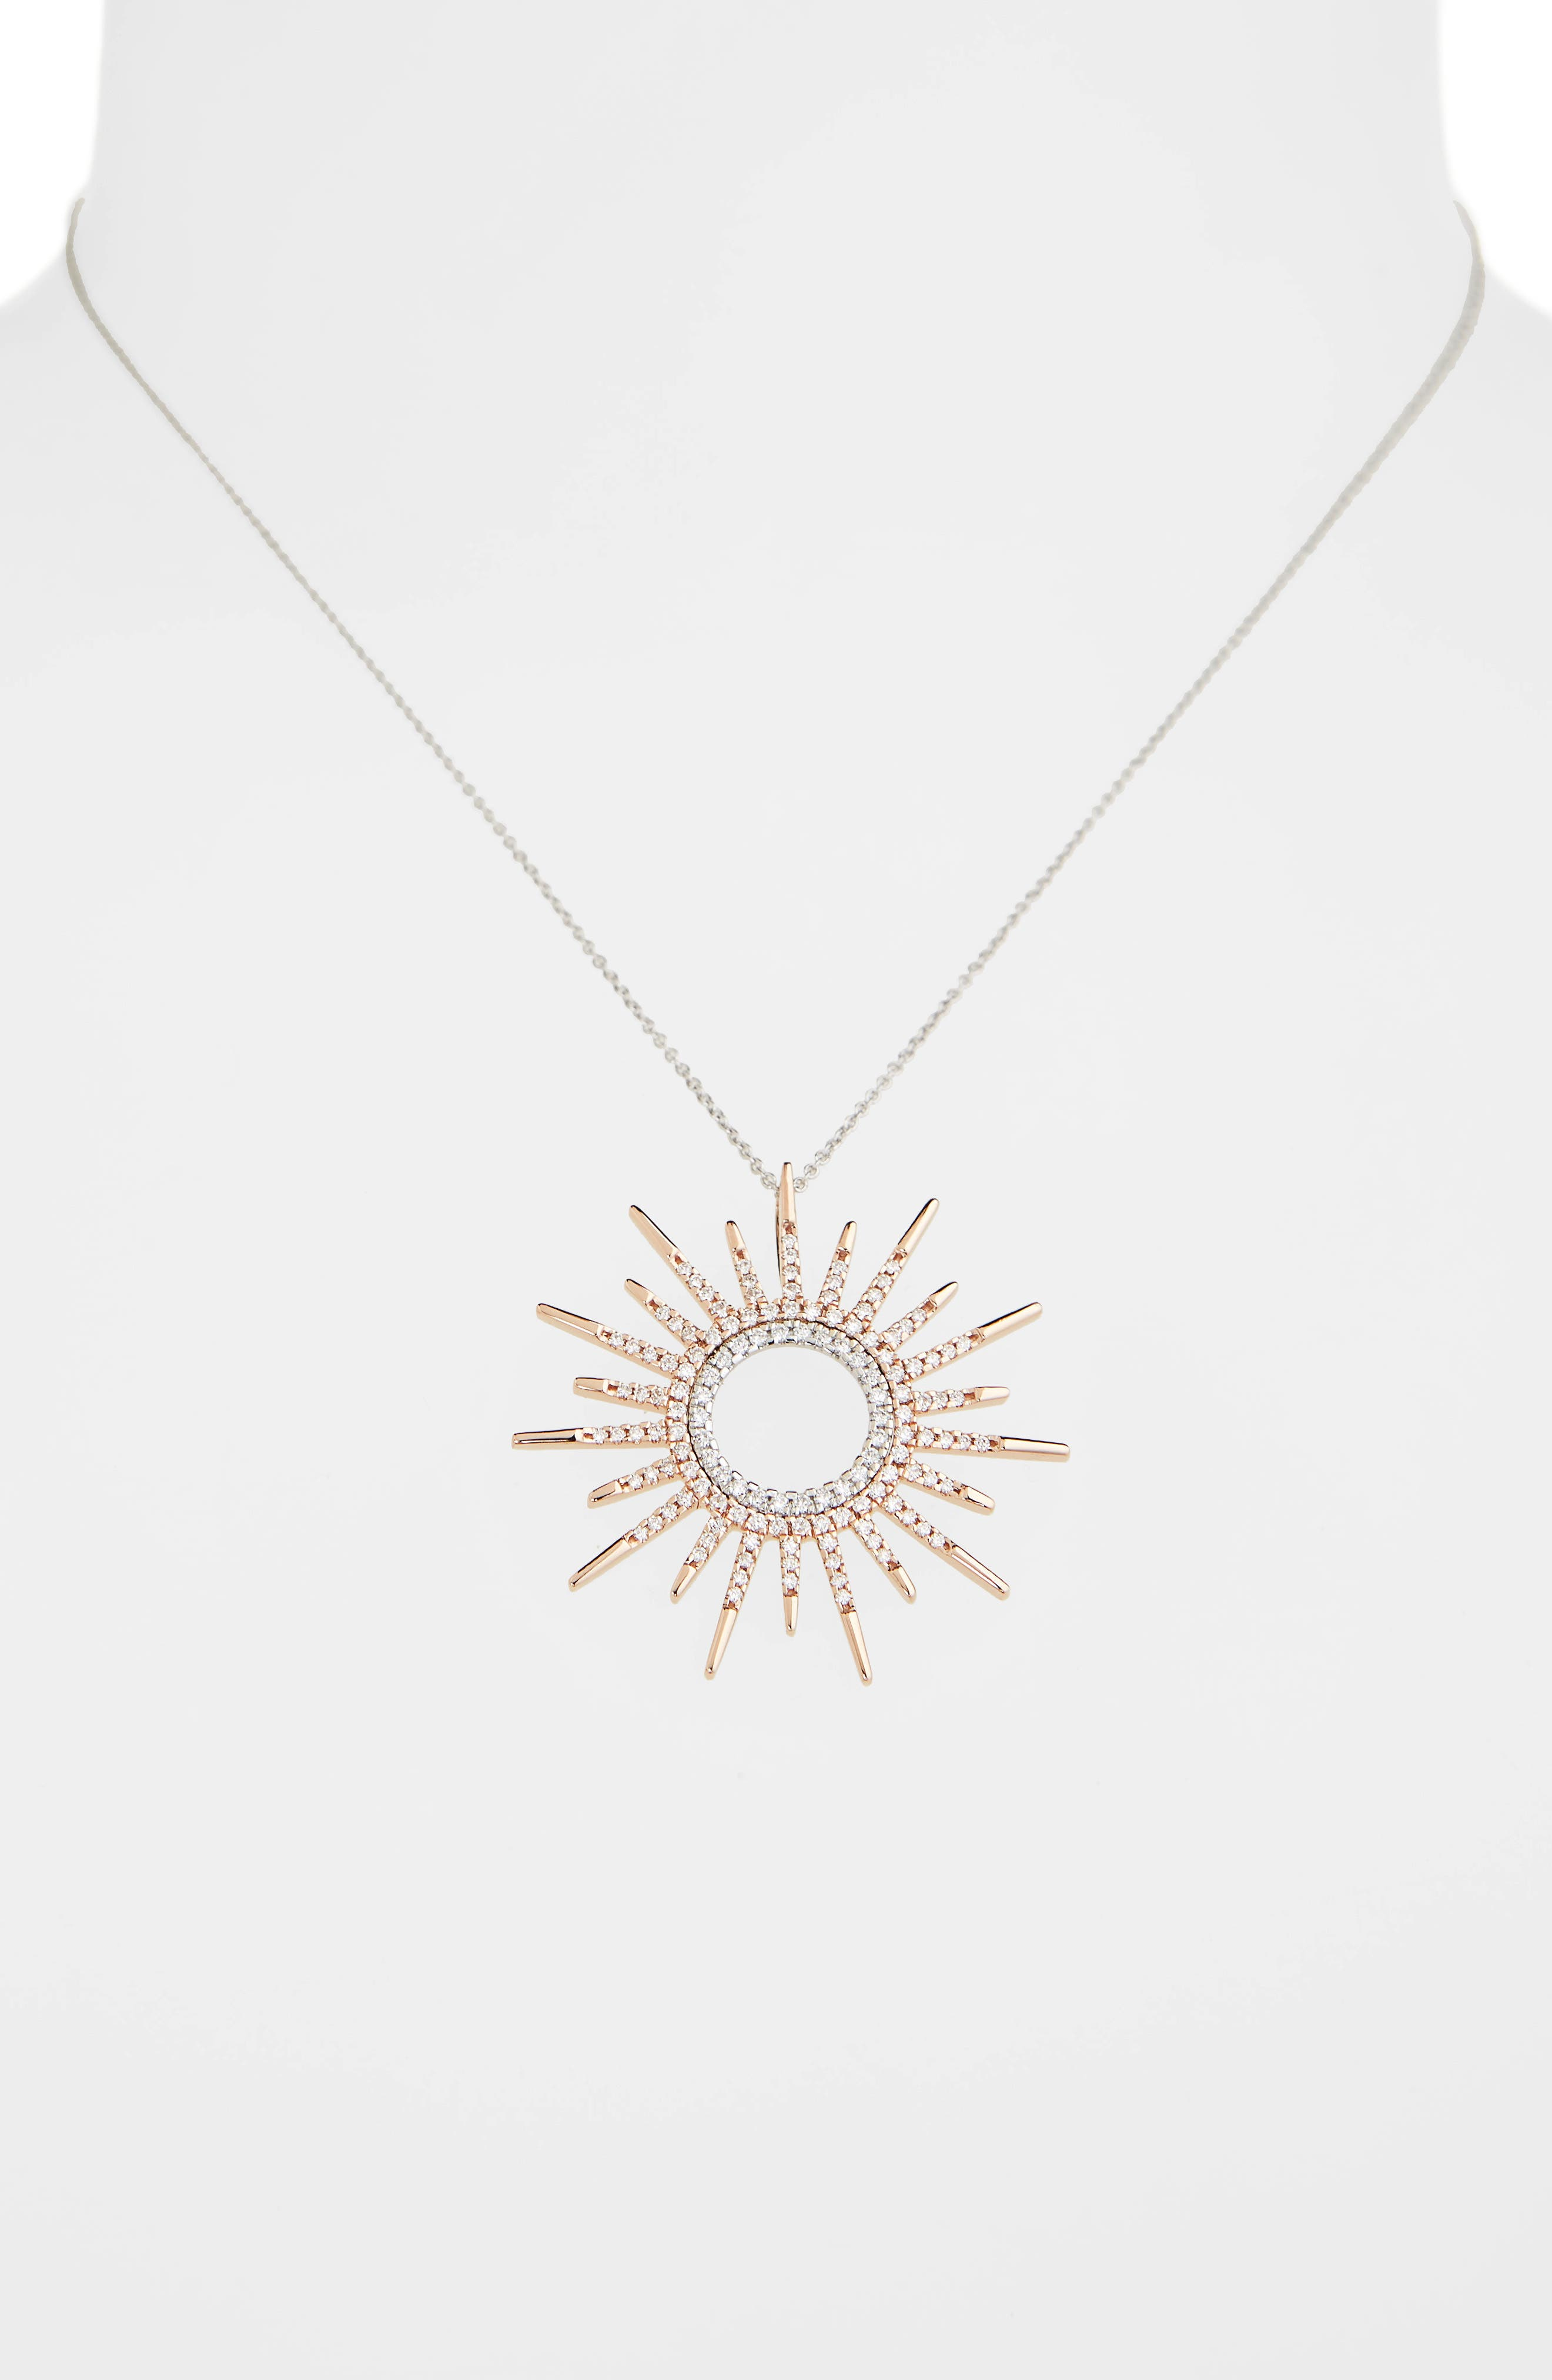 Diamond Sunburst Pendant Necklace,                             Alternate thumbnail 2, color,                             712